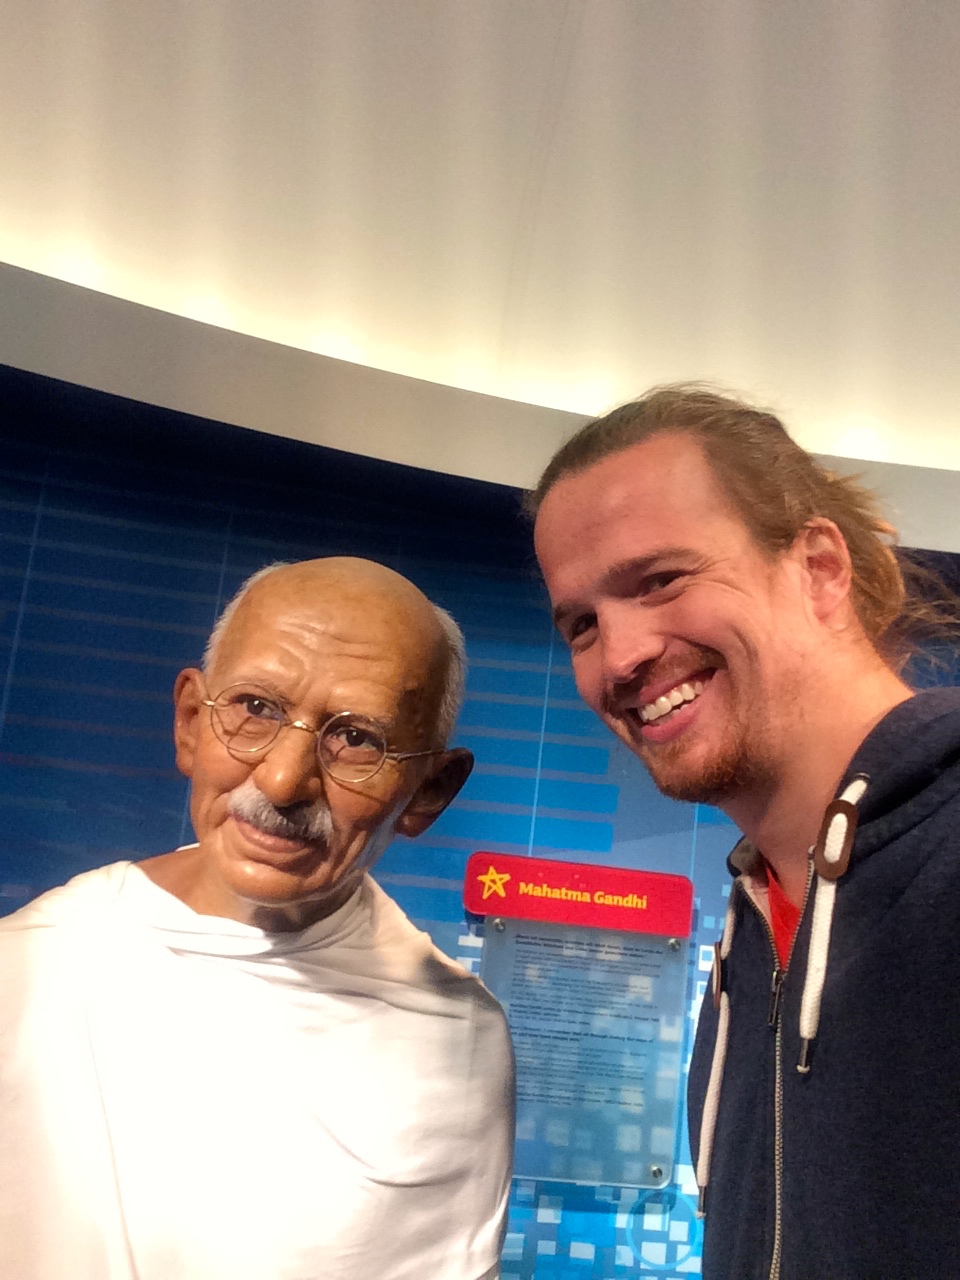 I loves me some Gandhi. He was into it too.